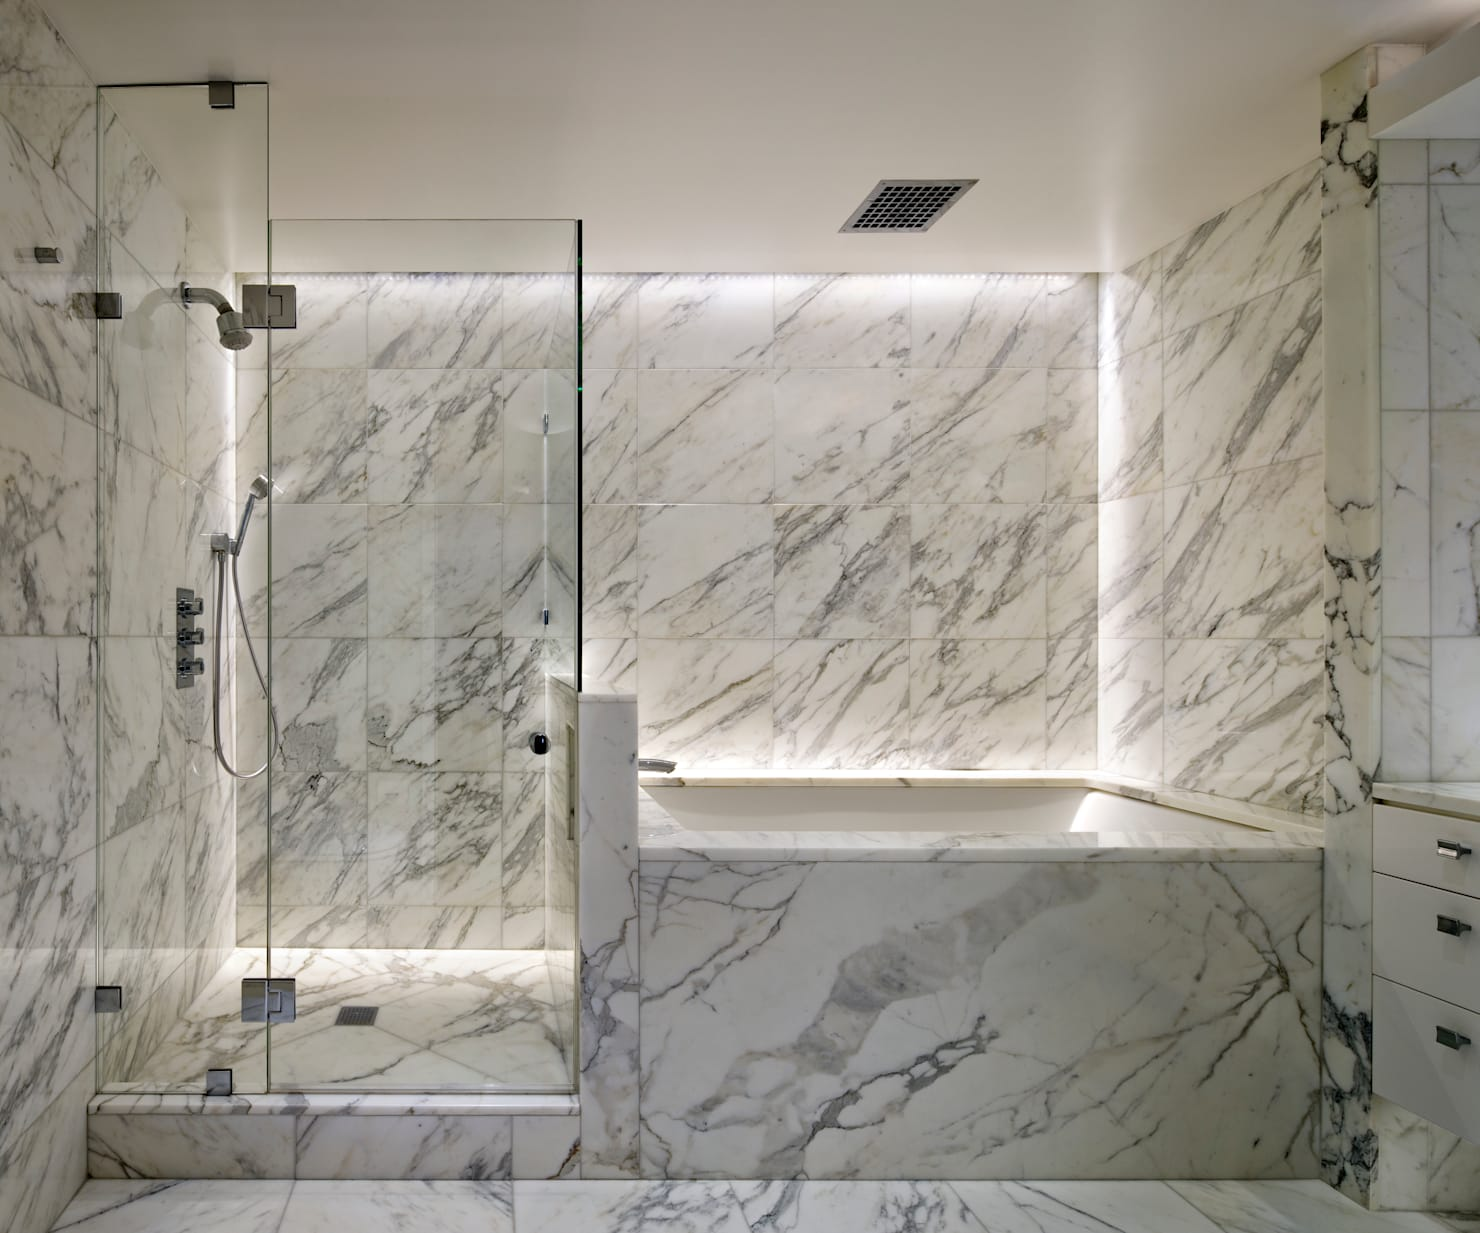 Epoxy Grout for Bathrooms